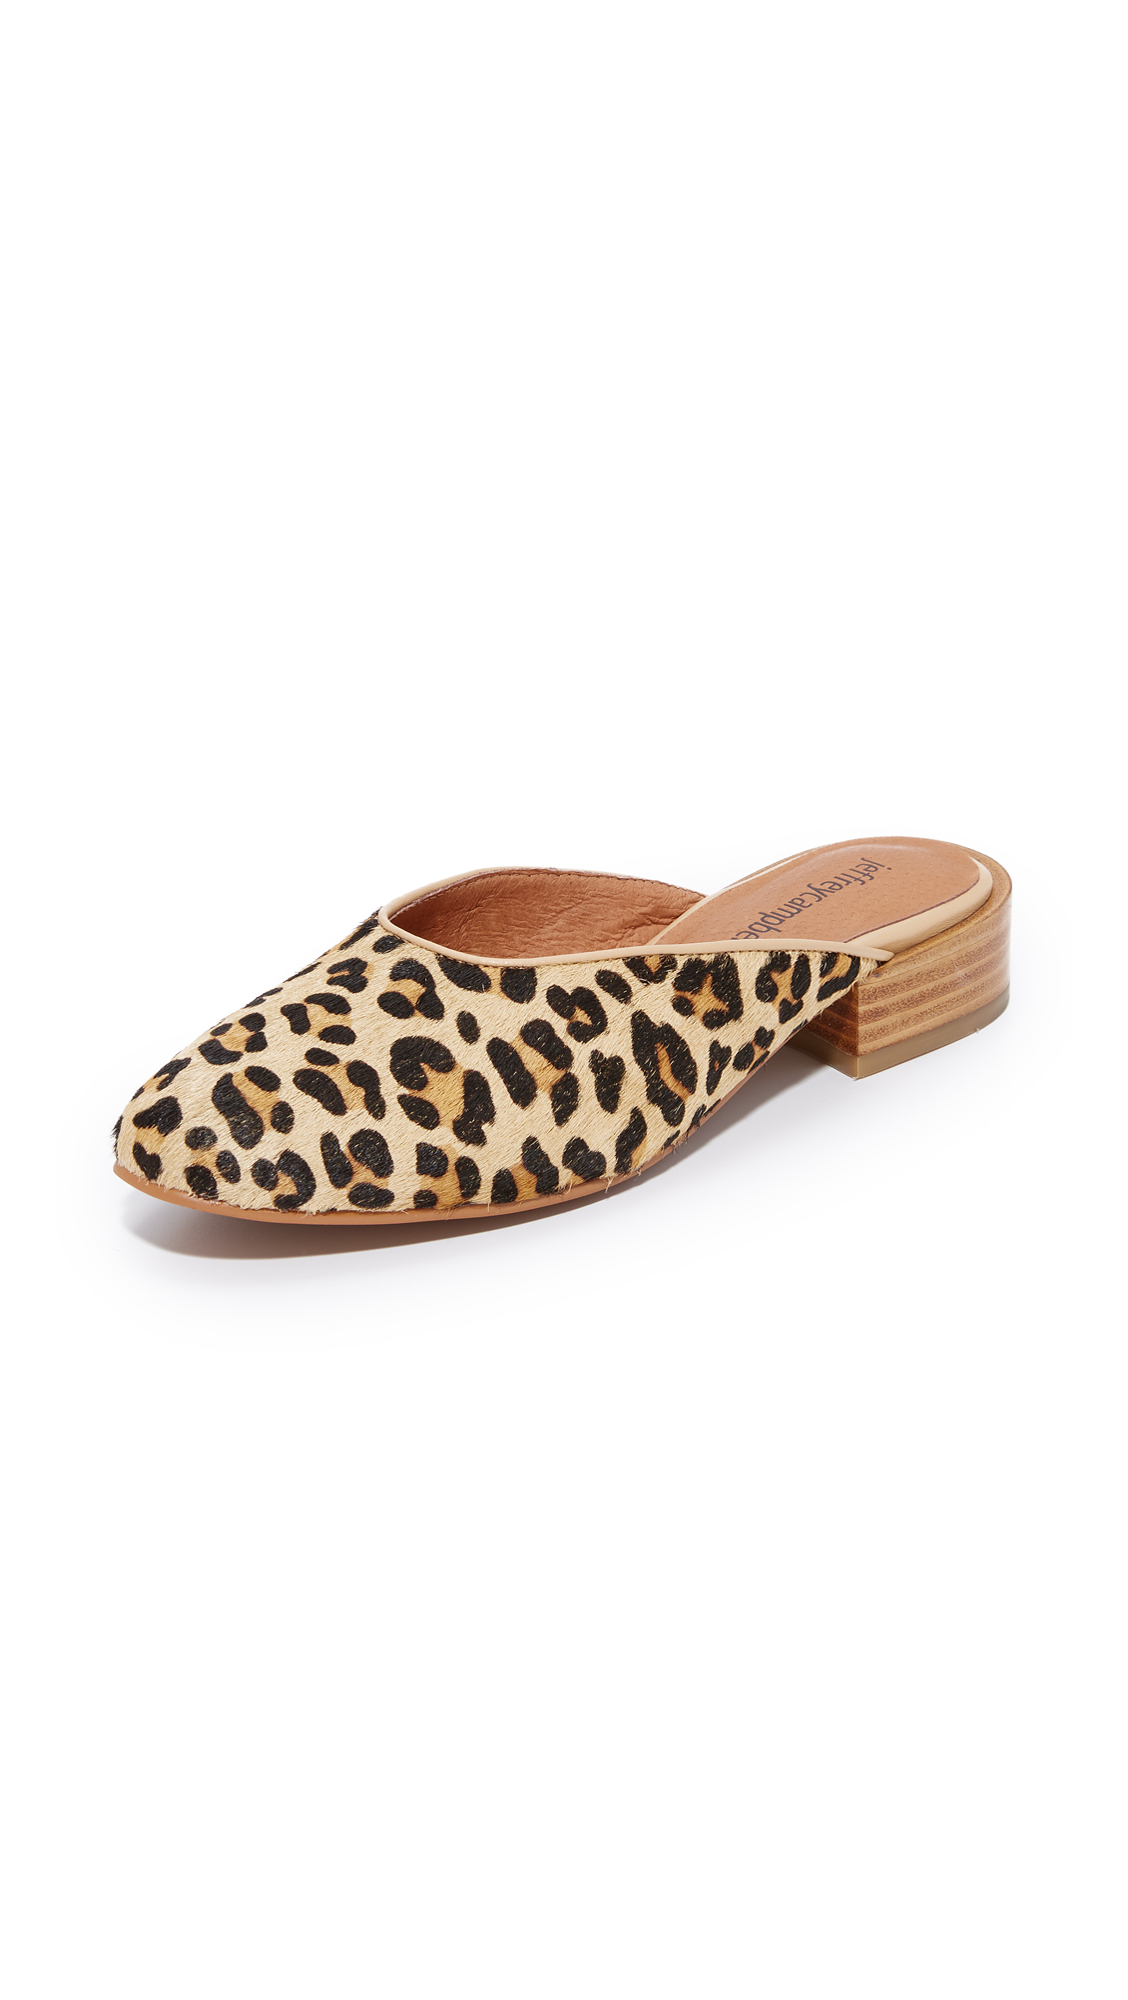 Jeffrey Campbell Mula Mules - Natural Cheetah